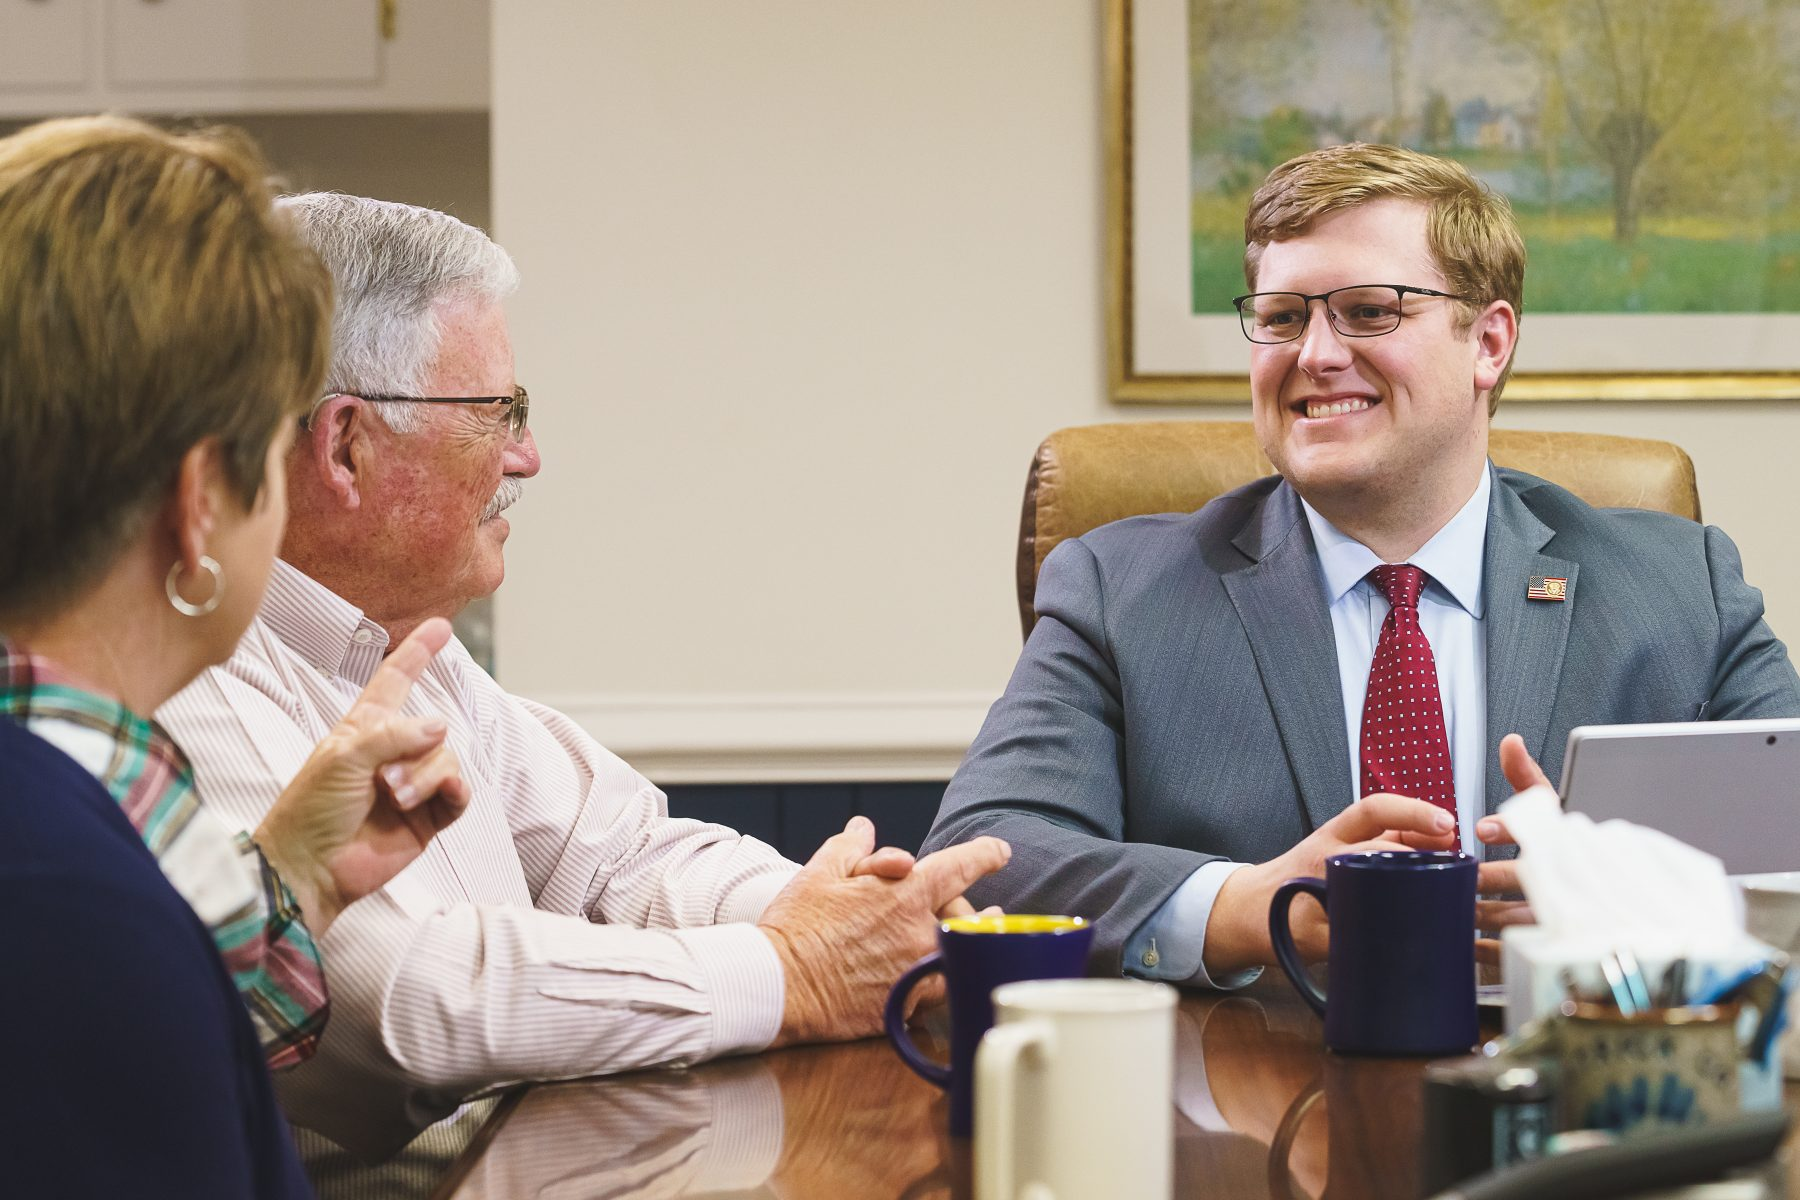 Wren Williams (R – VA09) Challenges Opponent to Three Debates in Three Counties on Three Issues, Will Hold Town Halls If Opponent Declines